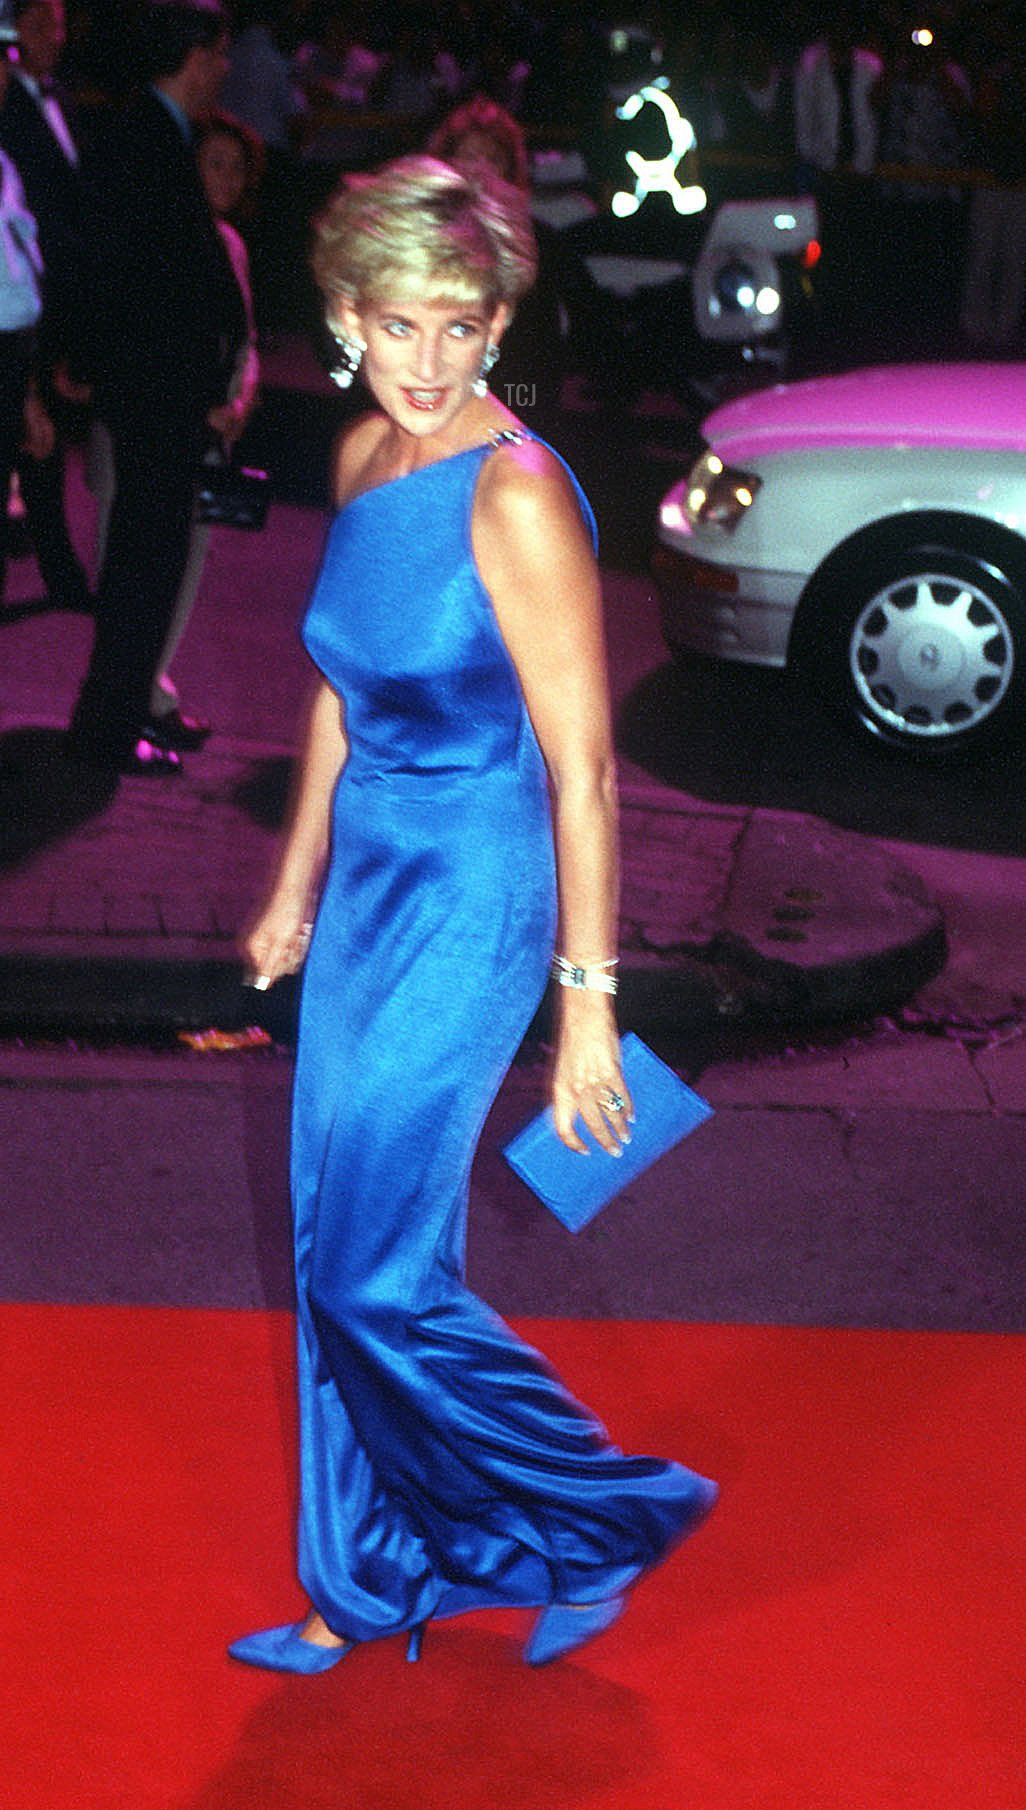 Diana, Princess of Wales, arrives at the Victor Chang Cardiac Research Institute dinner dance in Sydney on October 31, 1996 for her first engagement in Australia